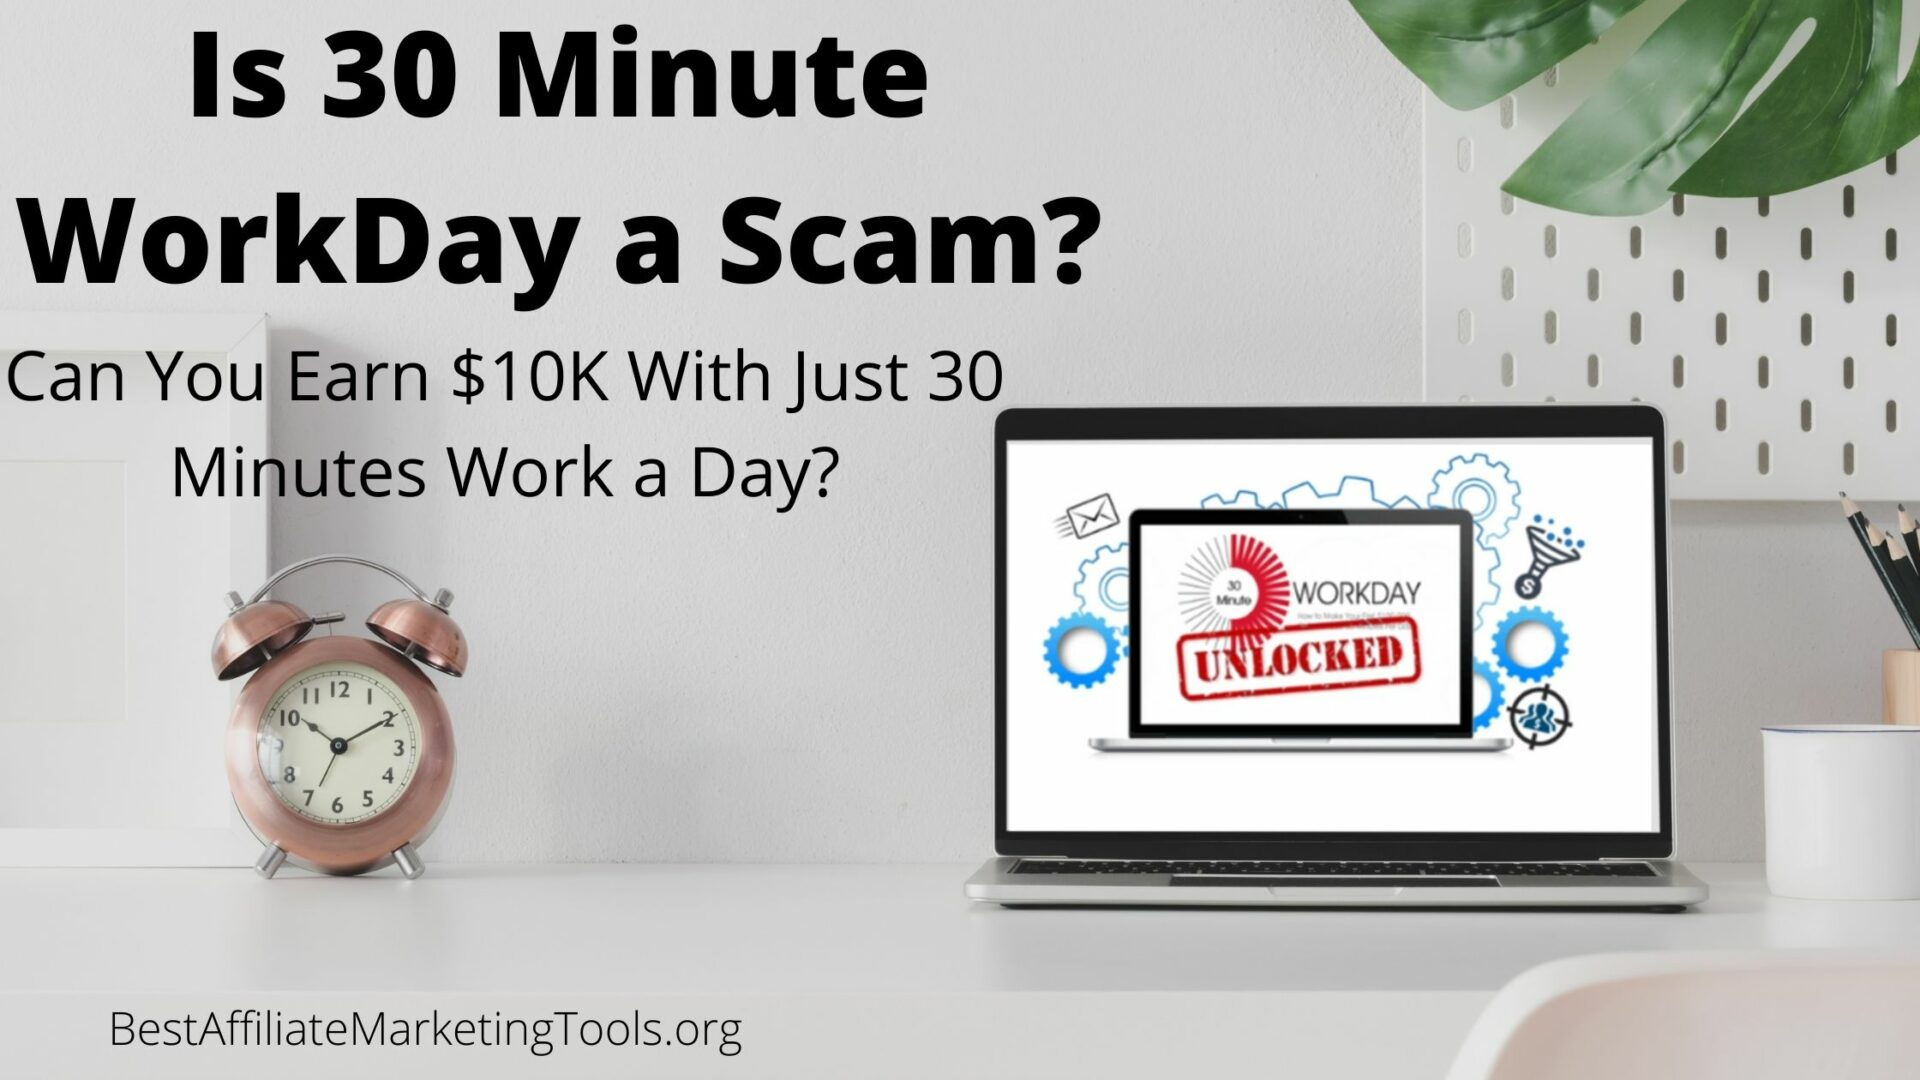 Is 30 Minute Workday a Scam